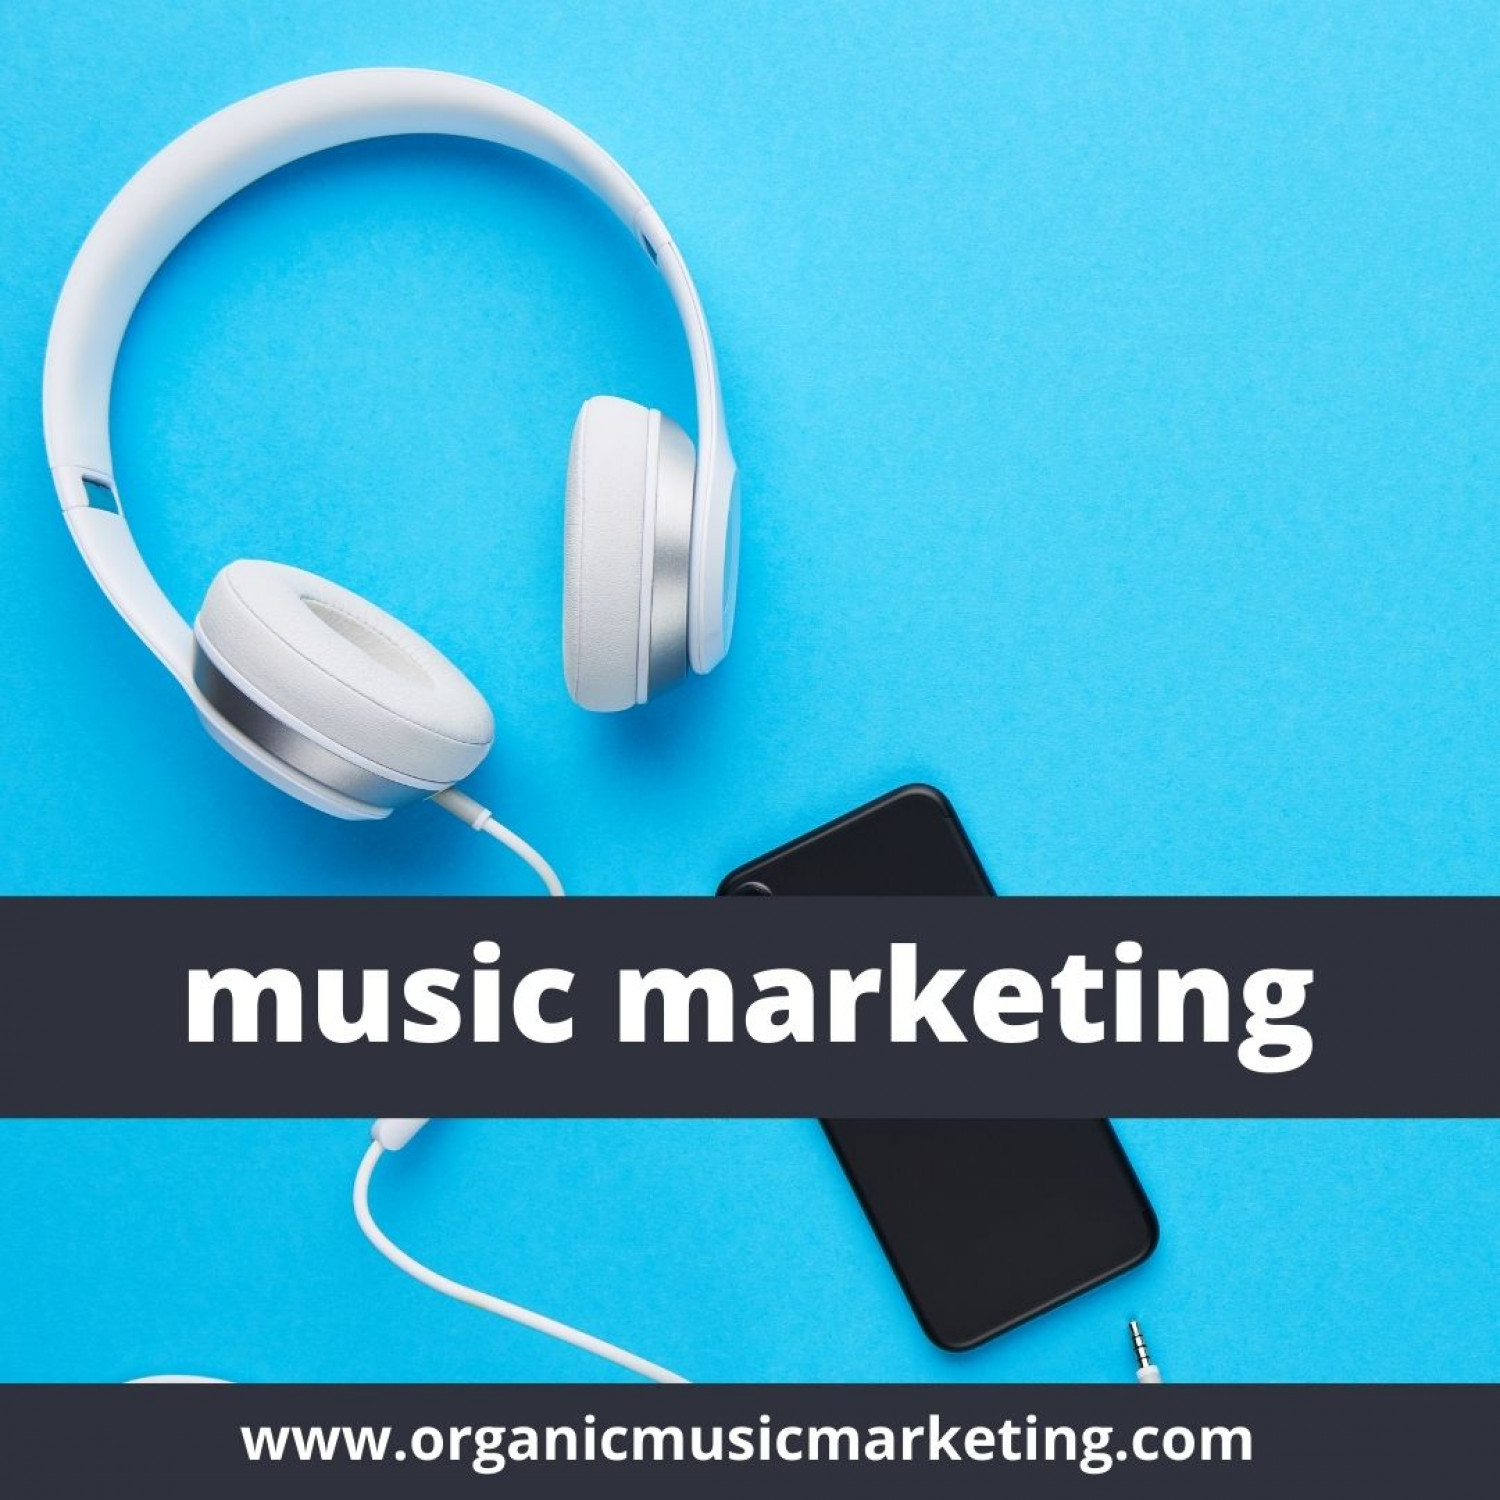 Music Promotion Online - 8 Essential Tips to Viral Internet Music Promotion Infographic